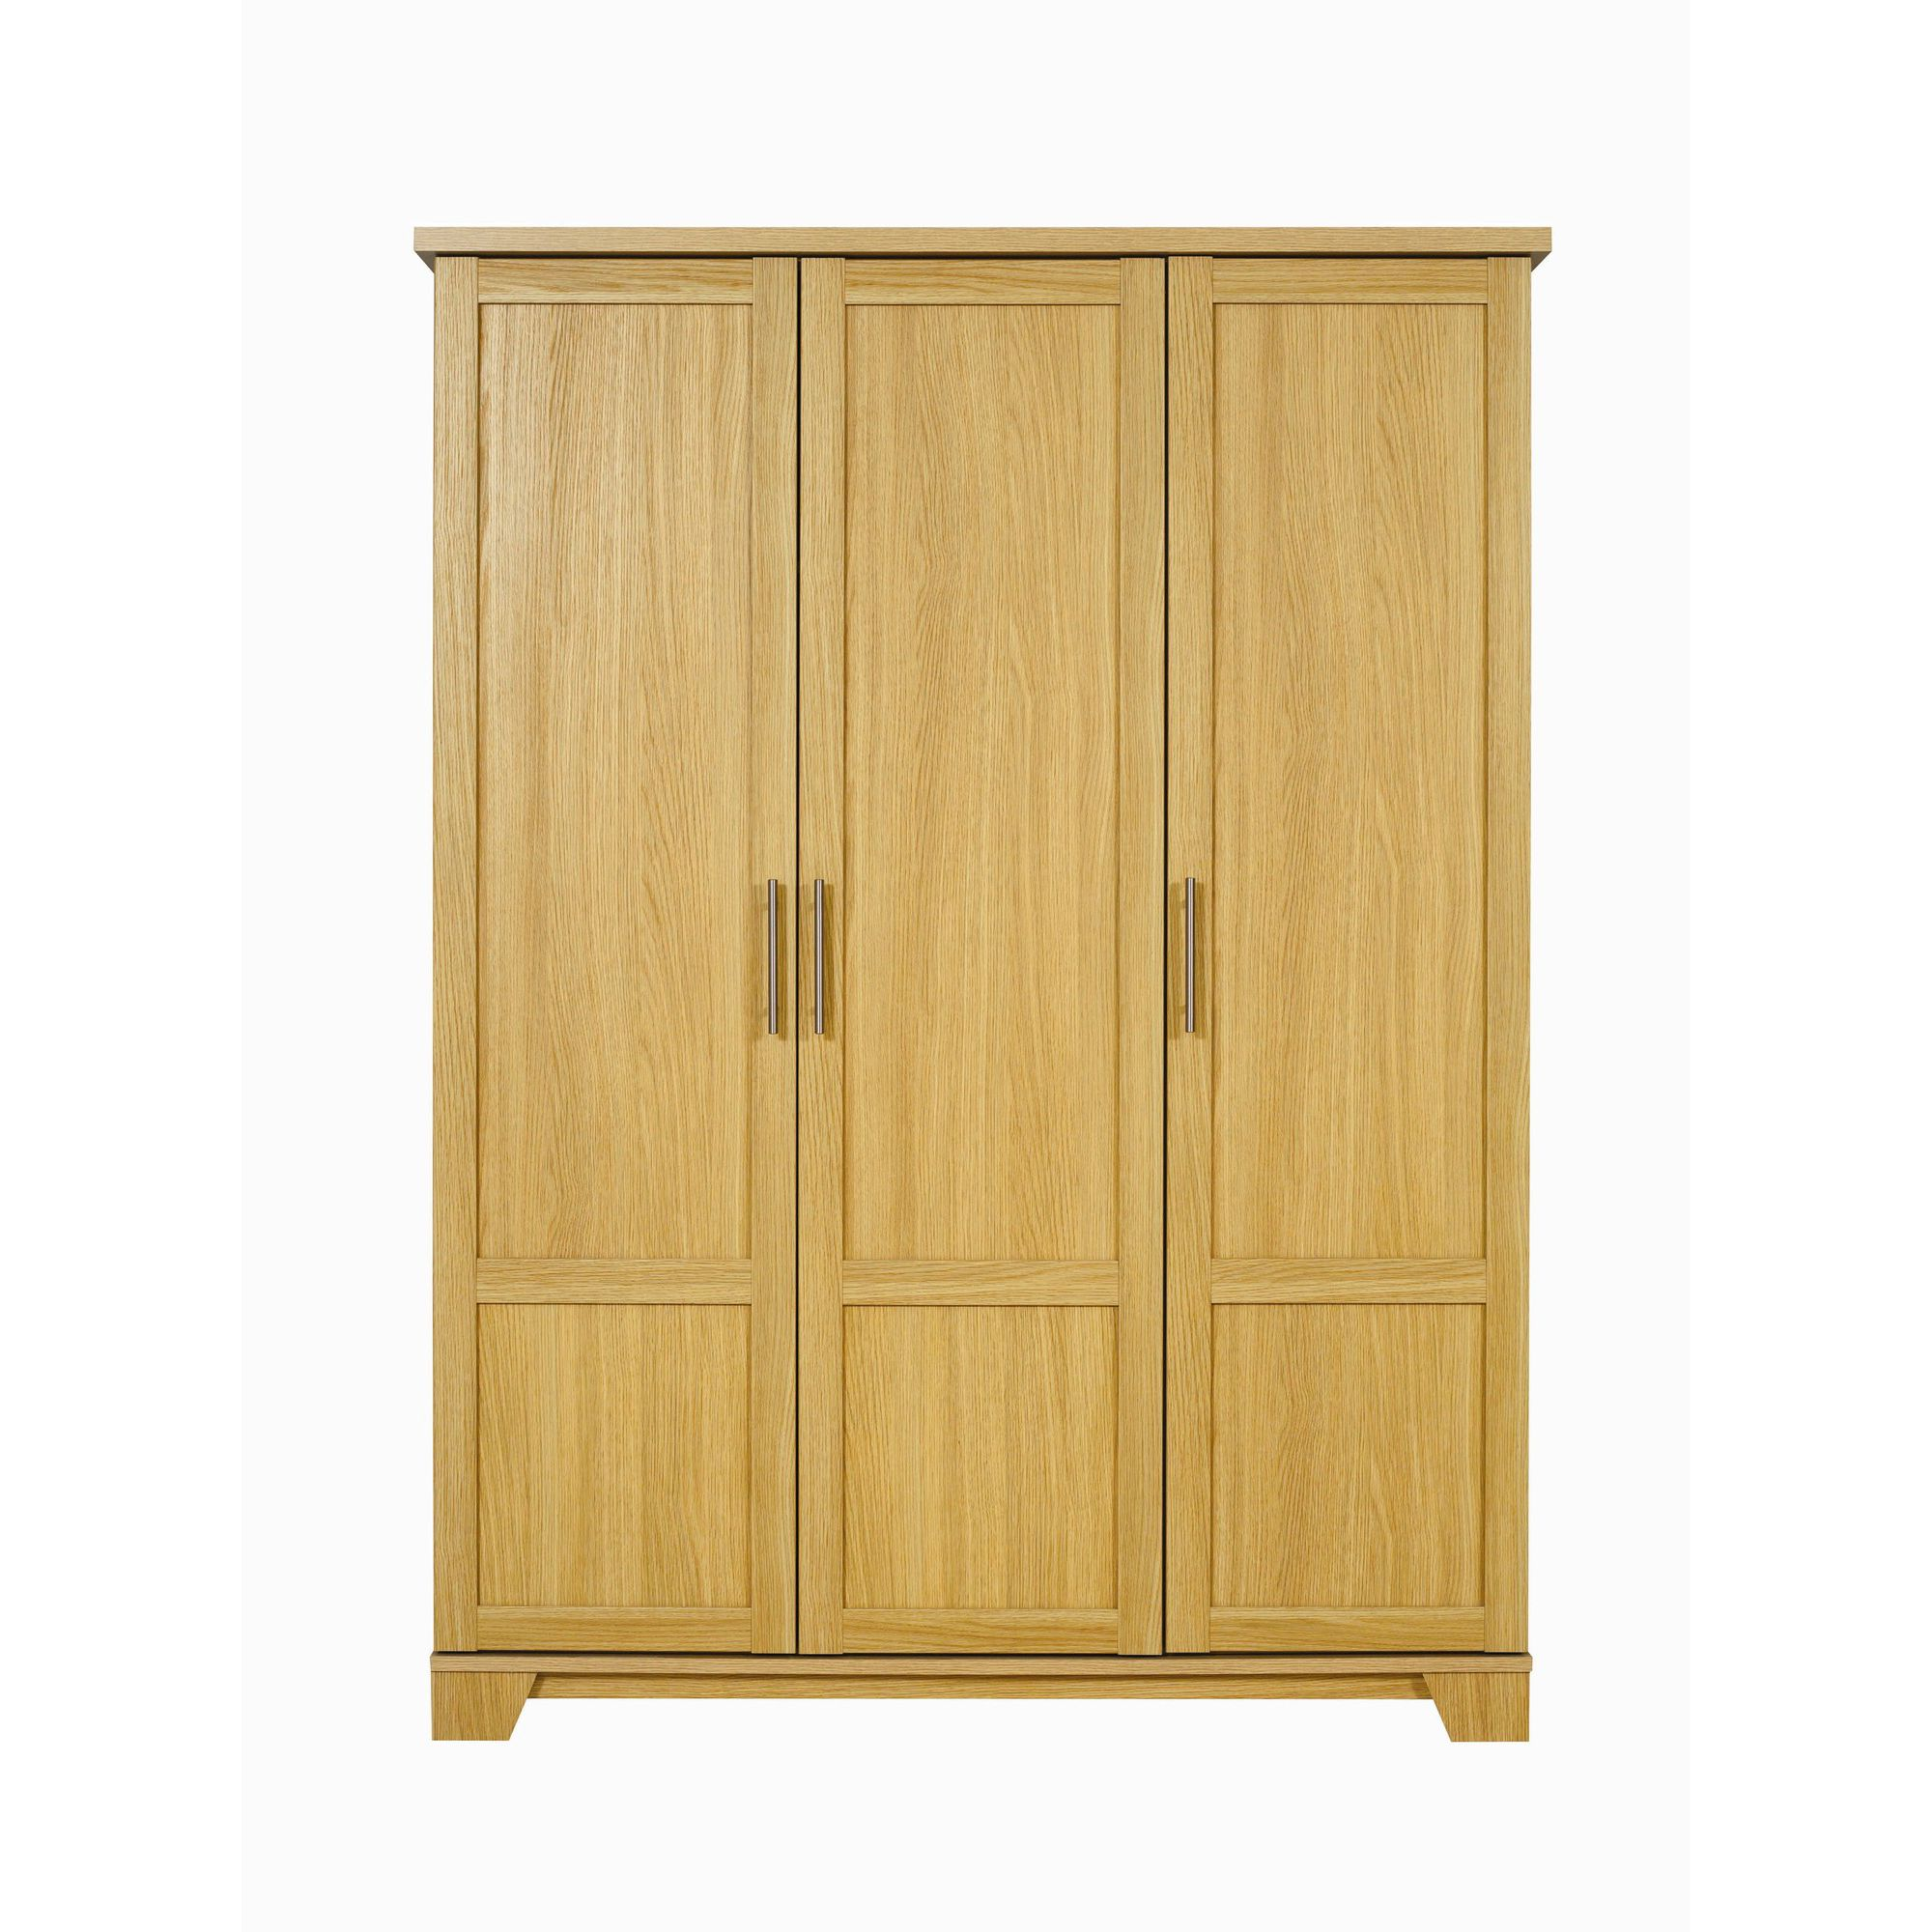 Caxton Melody 3 Door Short Height Plain Wardrobe in Natural Oak at Tesco Direct